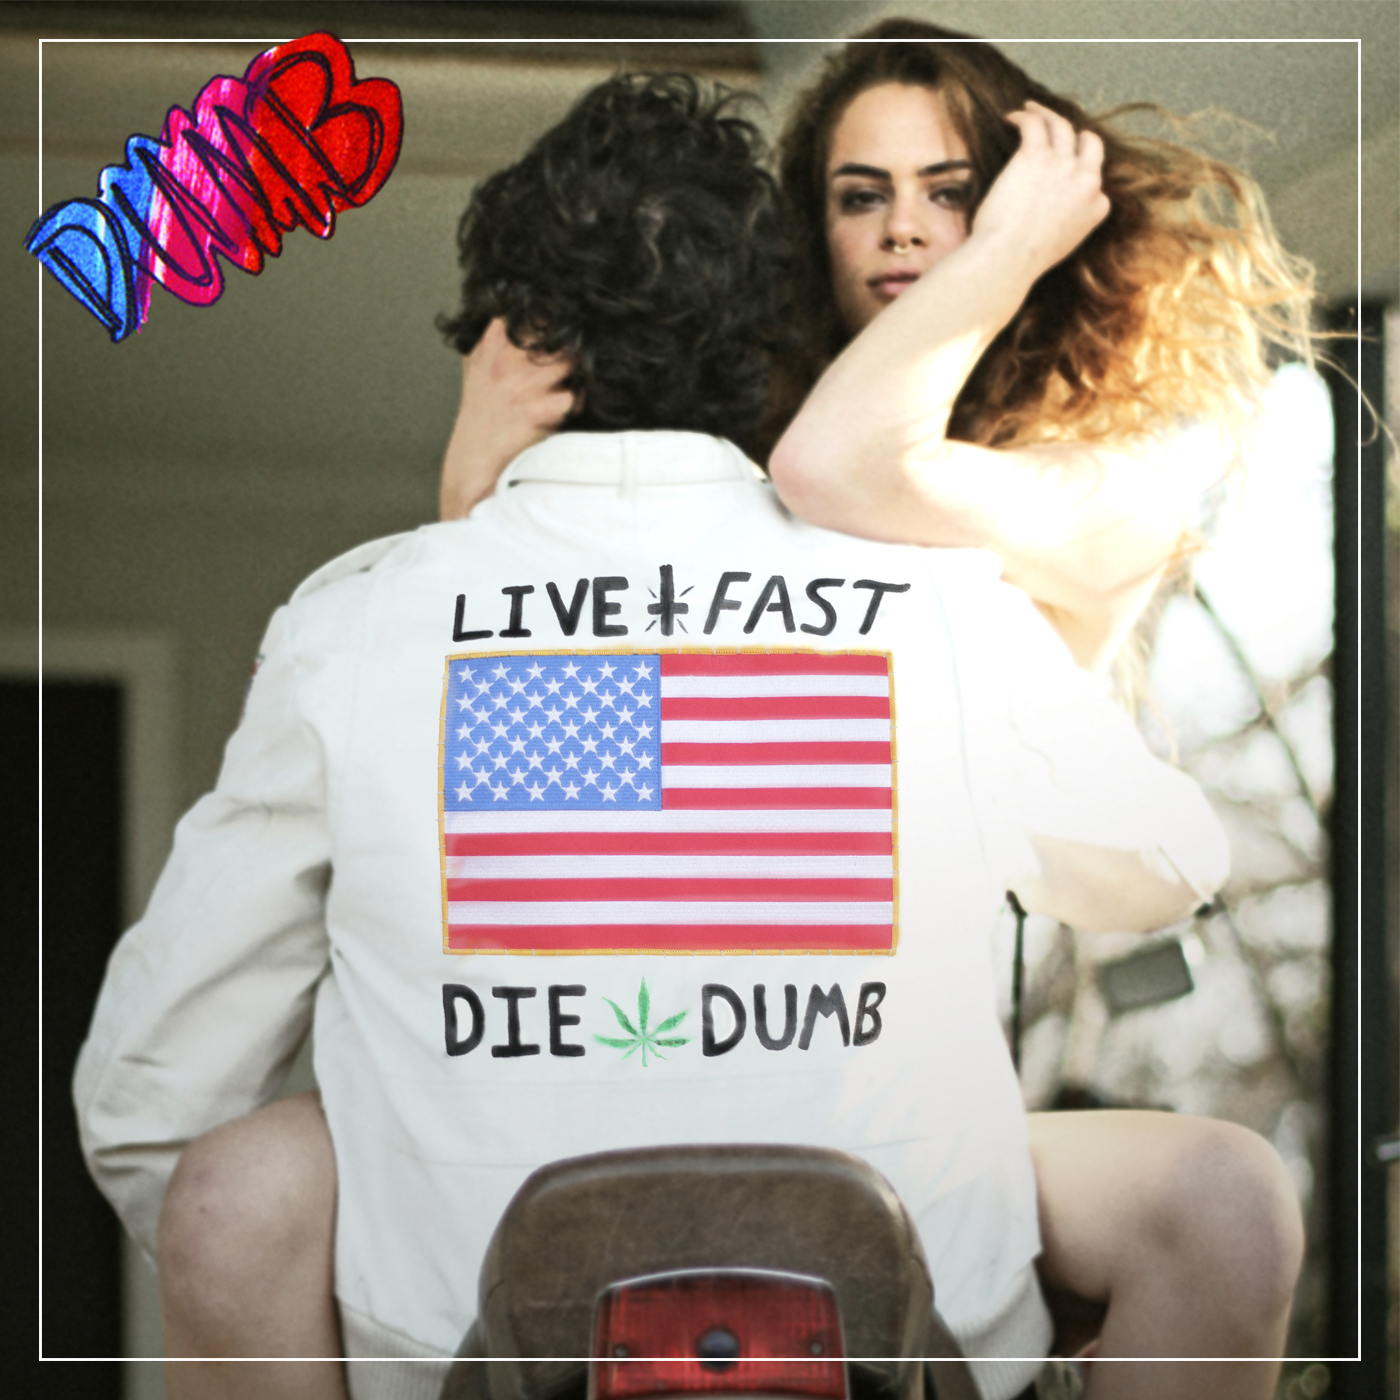 DUMB DOUBLE LP VINYL   - NOW SHIPPING                                                    http://www.axismundirecords.com/shop/live-fast-die-dumb